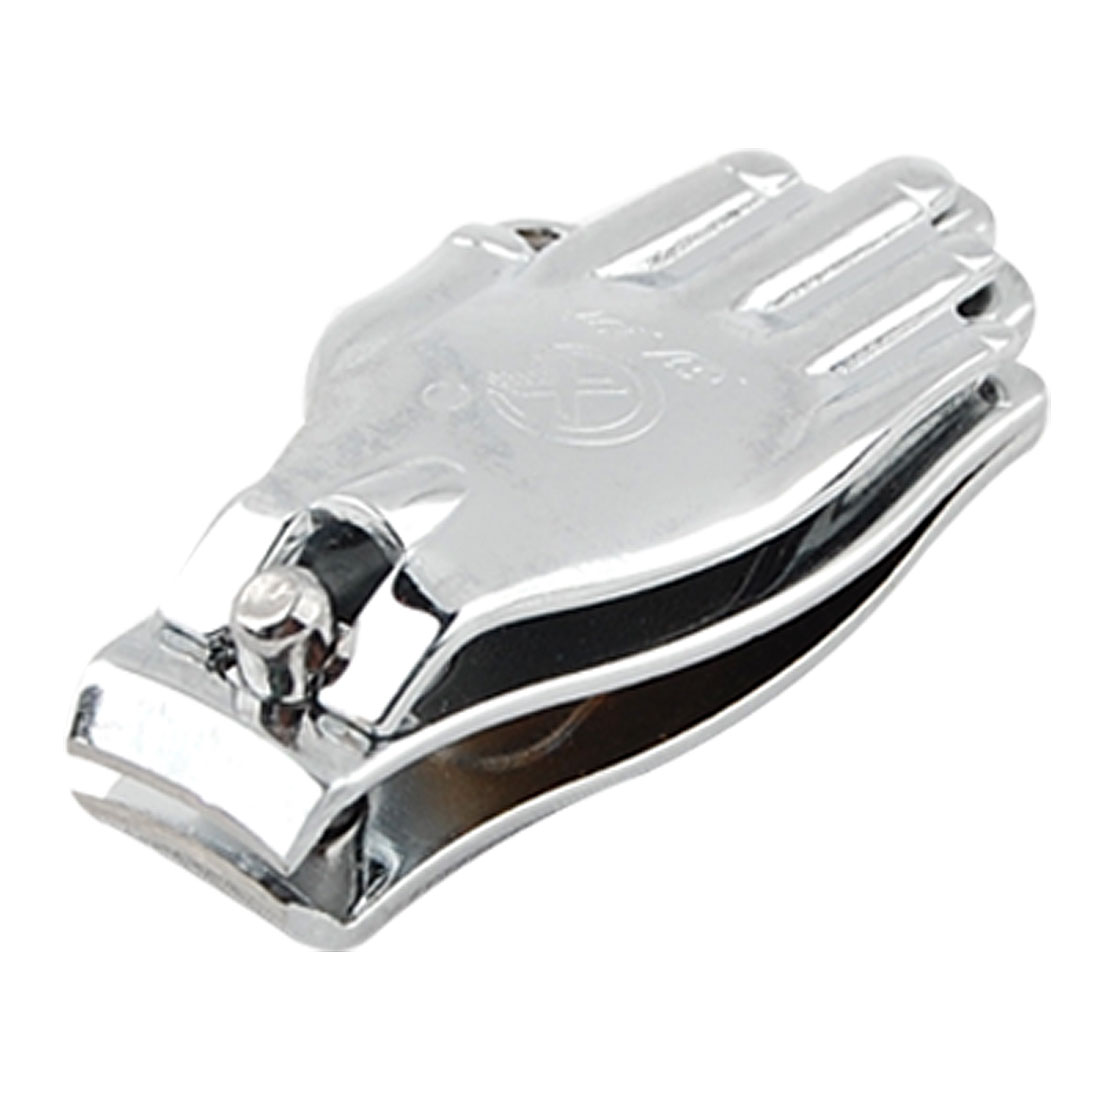 Palmation Type Stainless Steel Mini Nail Clipper